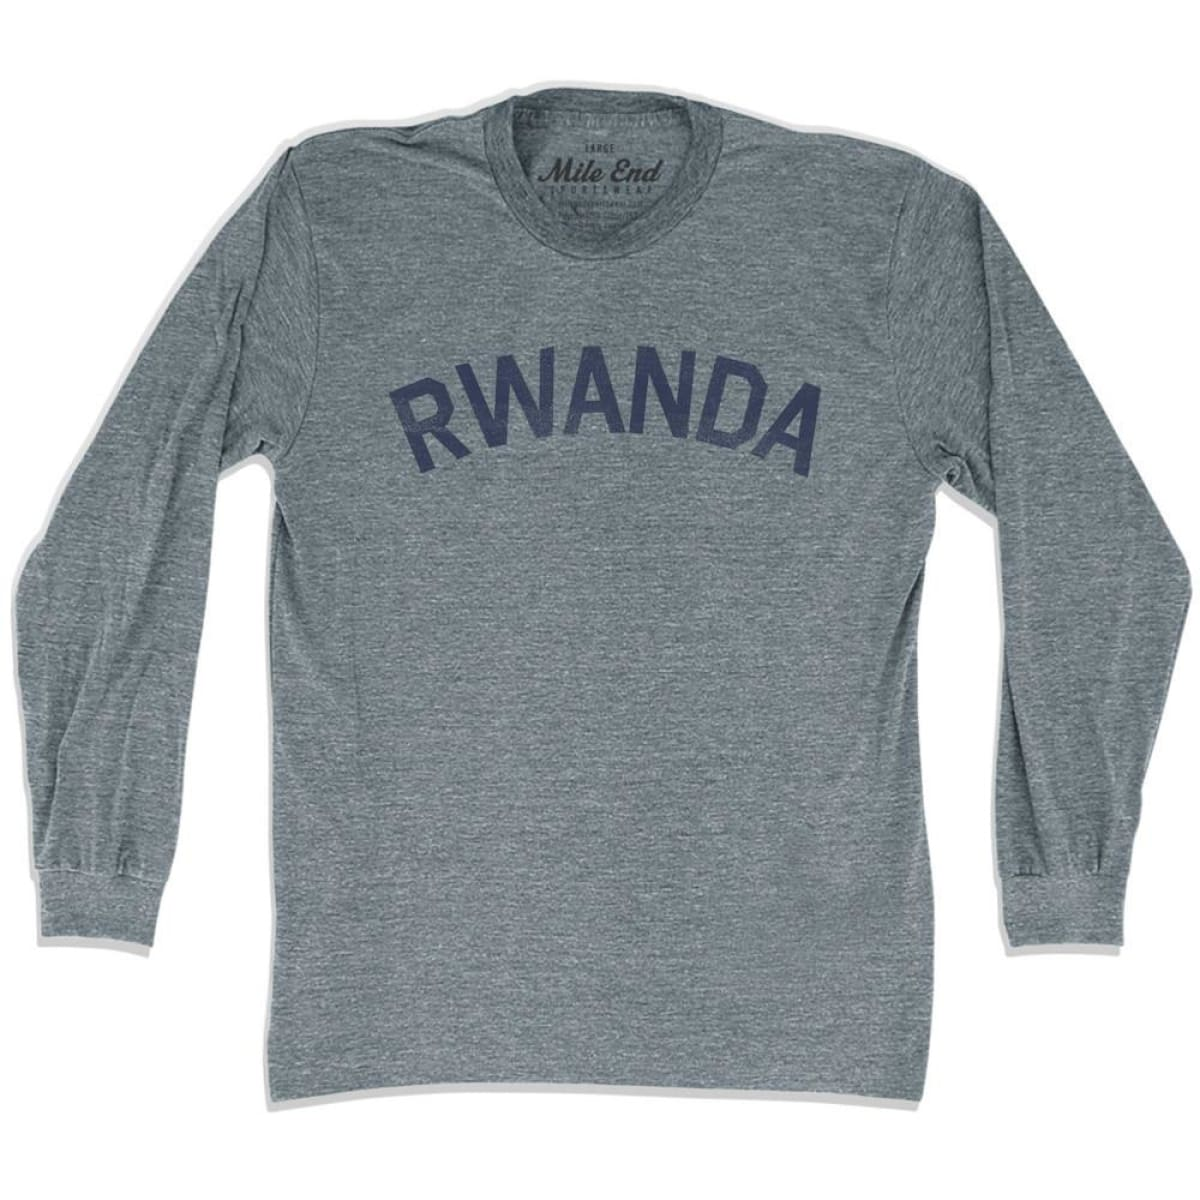 Rwanda City Vintage Long Sleeve T-shirt - Athletic Grey / Adult X-Small - Mile End City